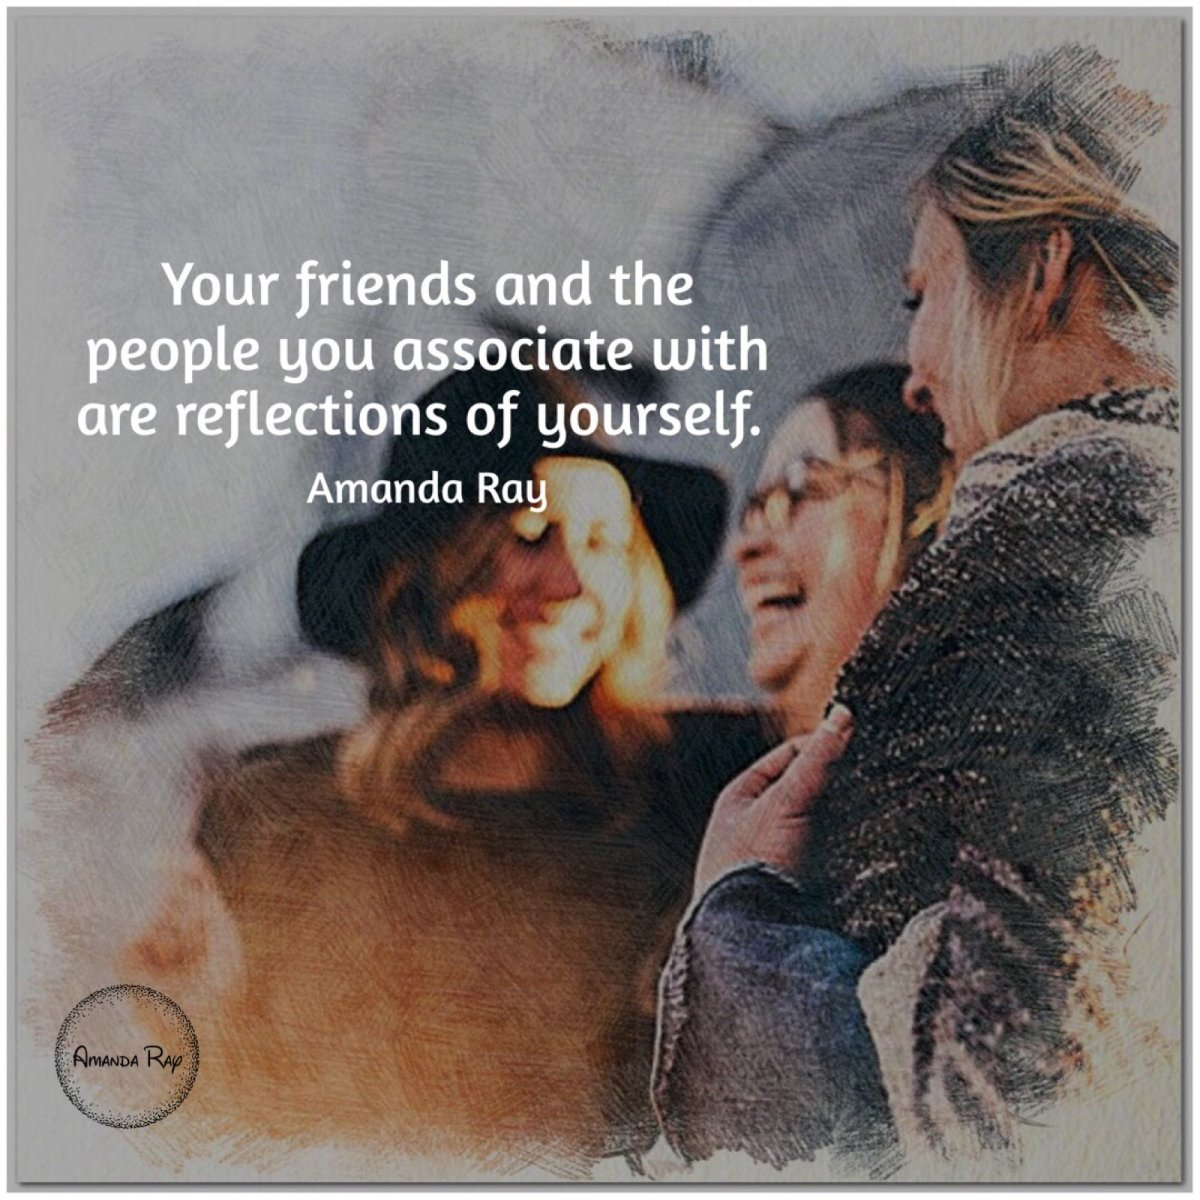 Reflections of yourself